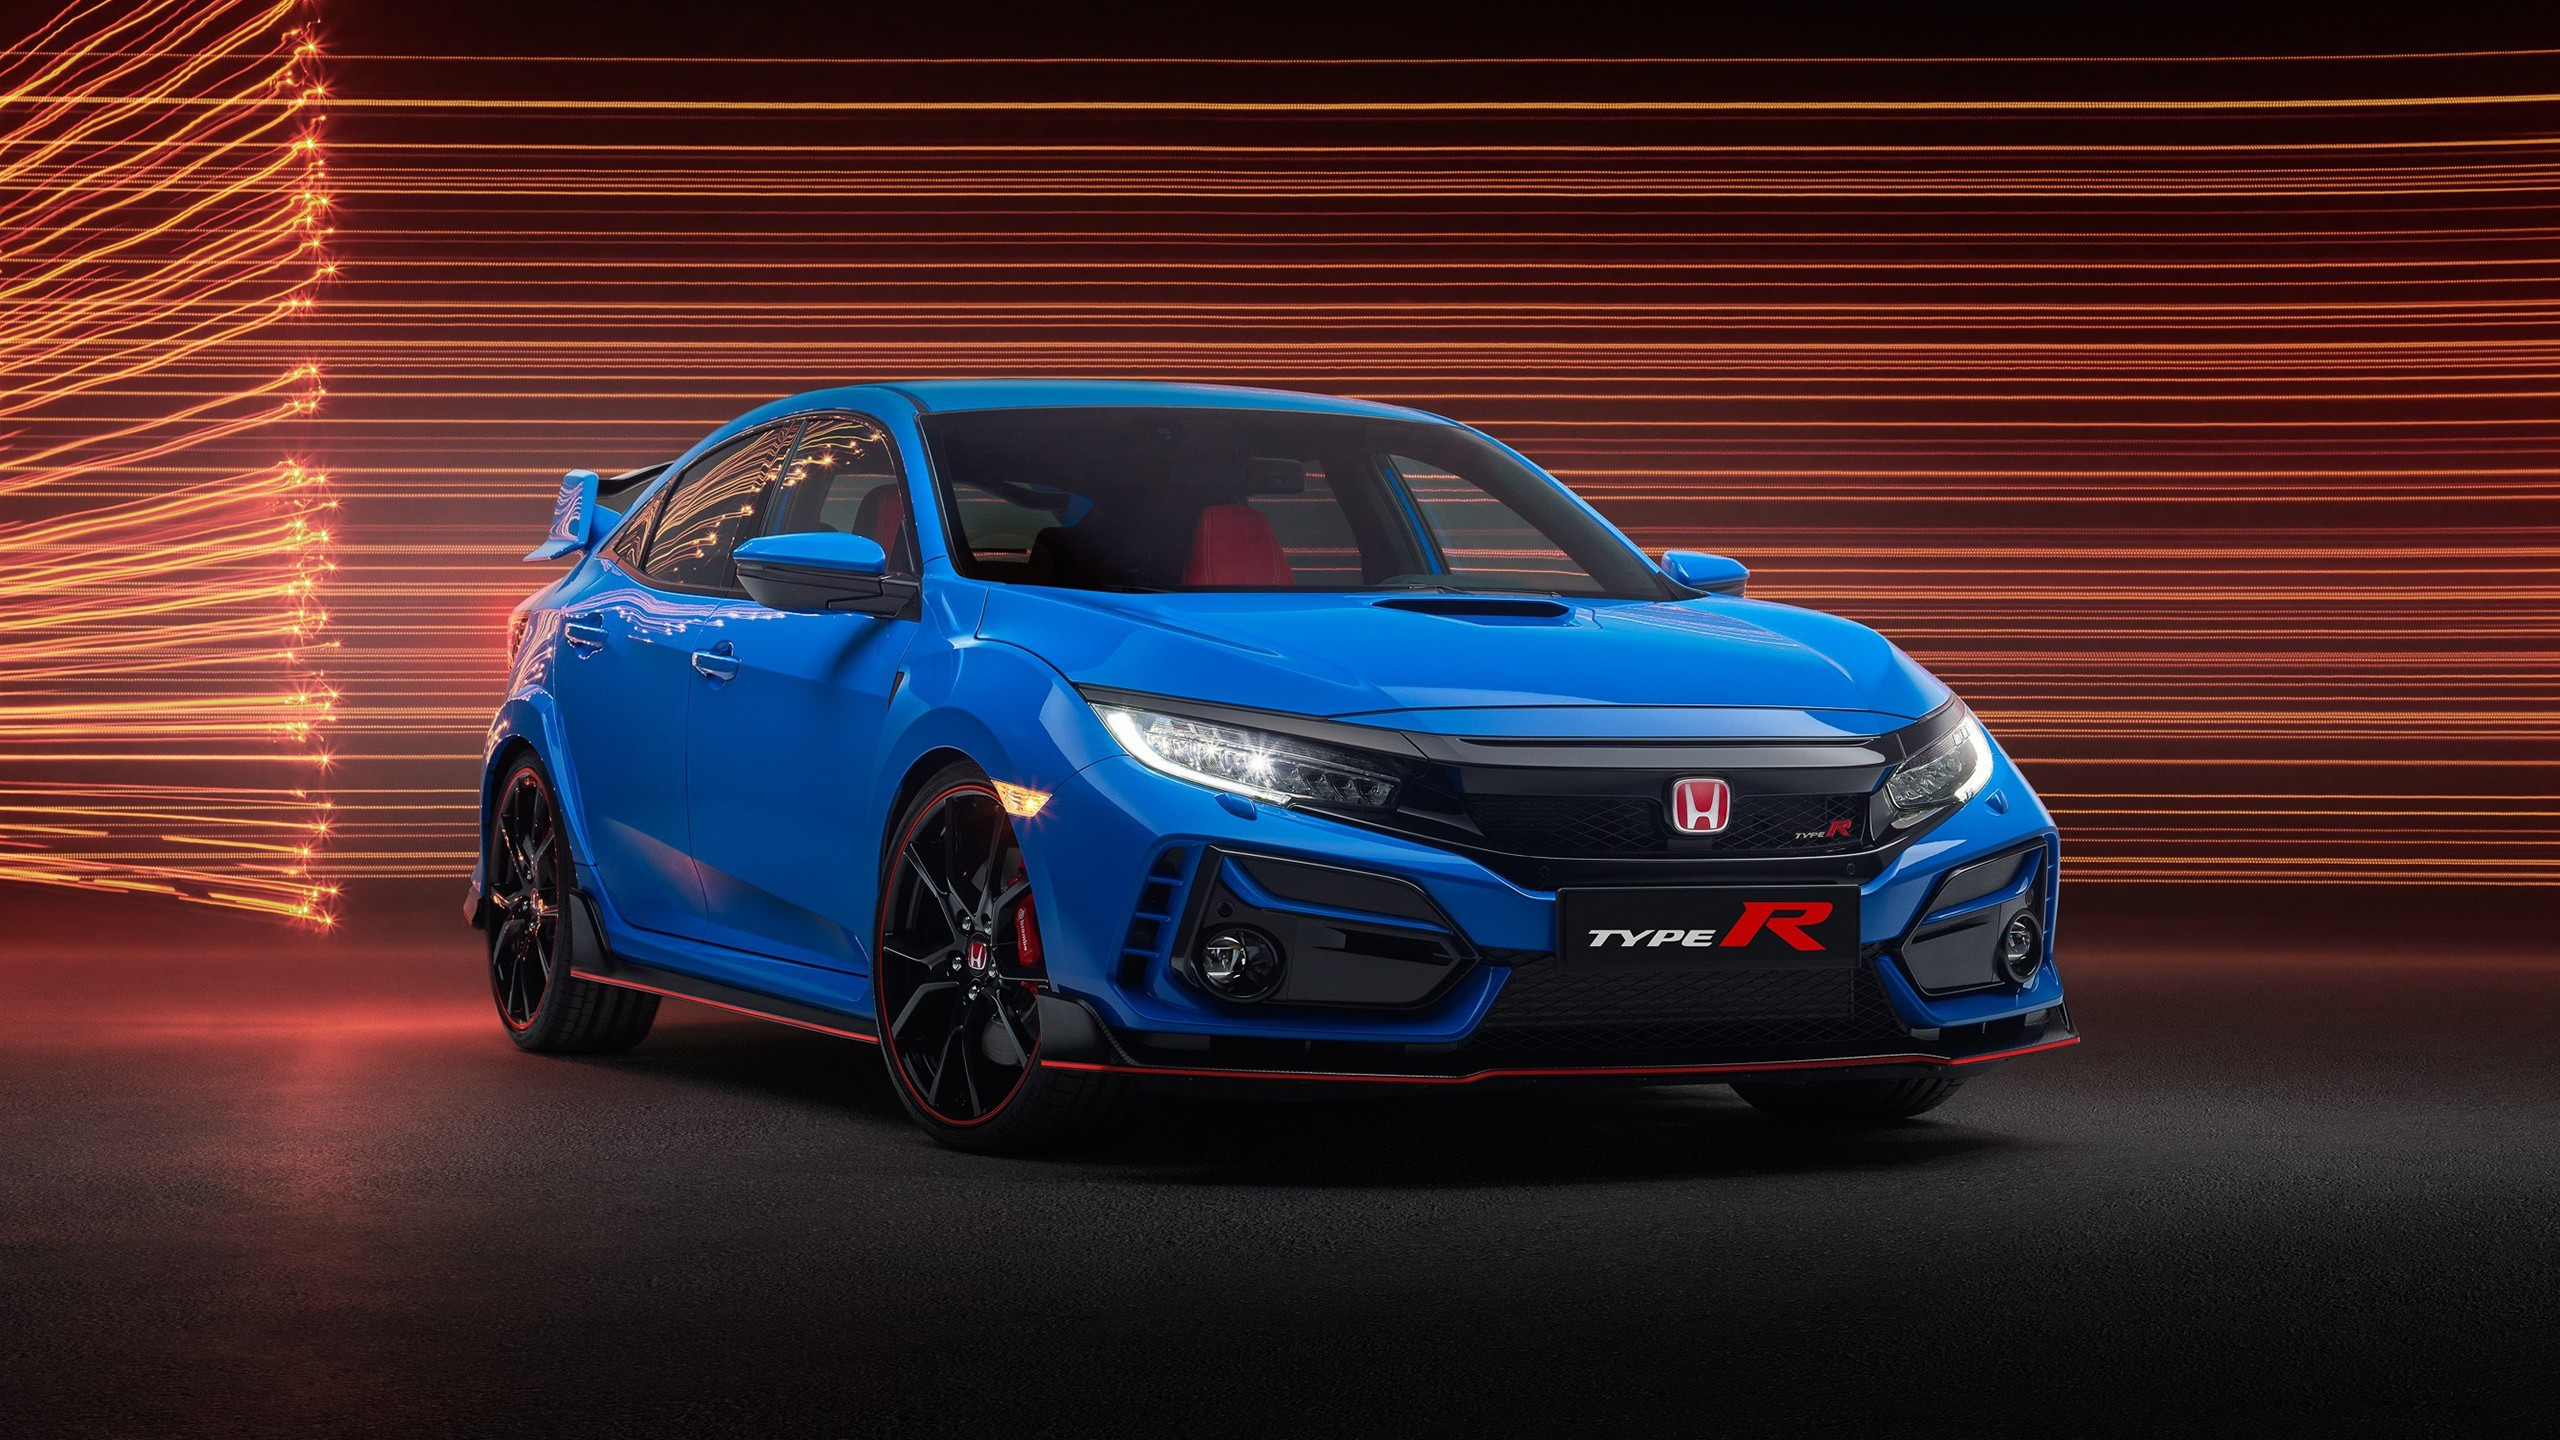 The auto editors of consumer guide the honda accord was introduced way. Honda Civic Type R 2020 Wallpaper   HD Car Wallpapers   ID